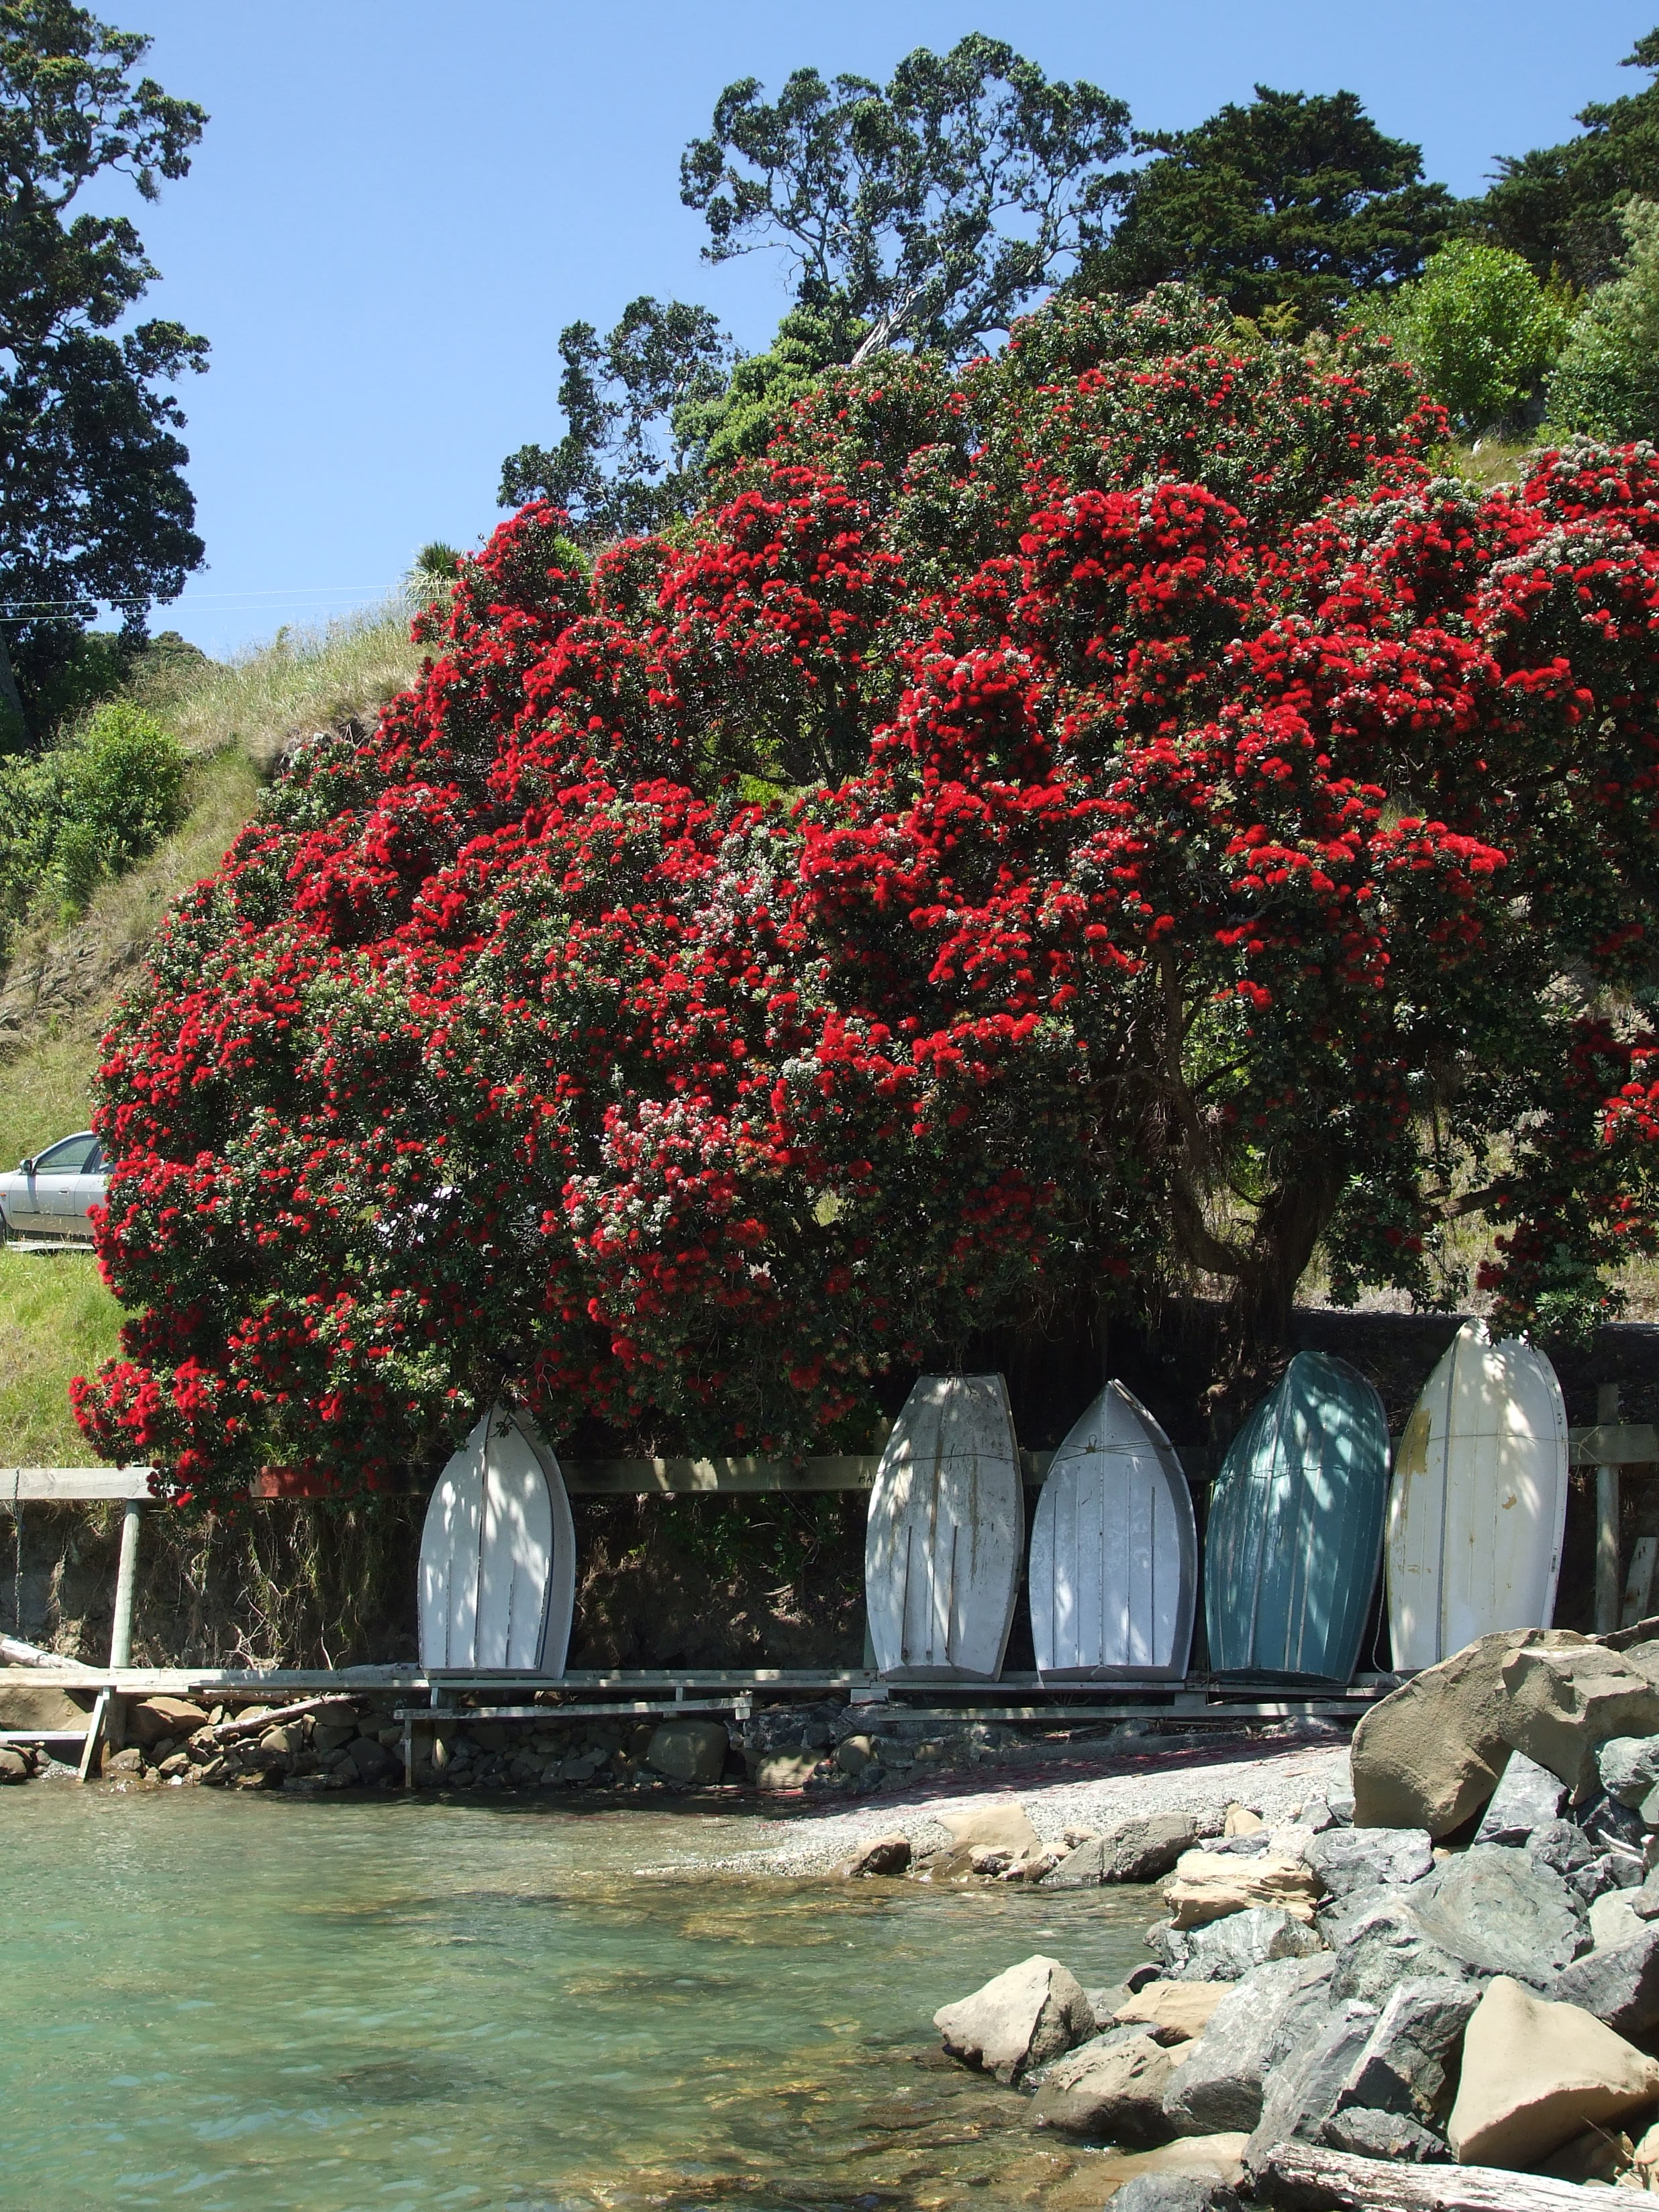 CHRISTMAS AT MAHURANGI HARBOUR